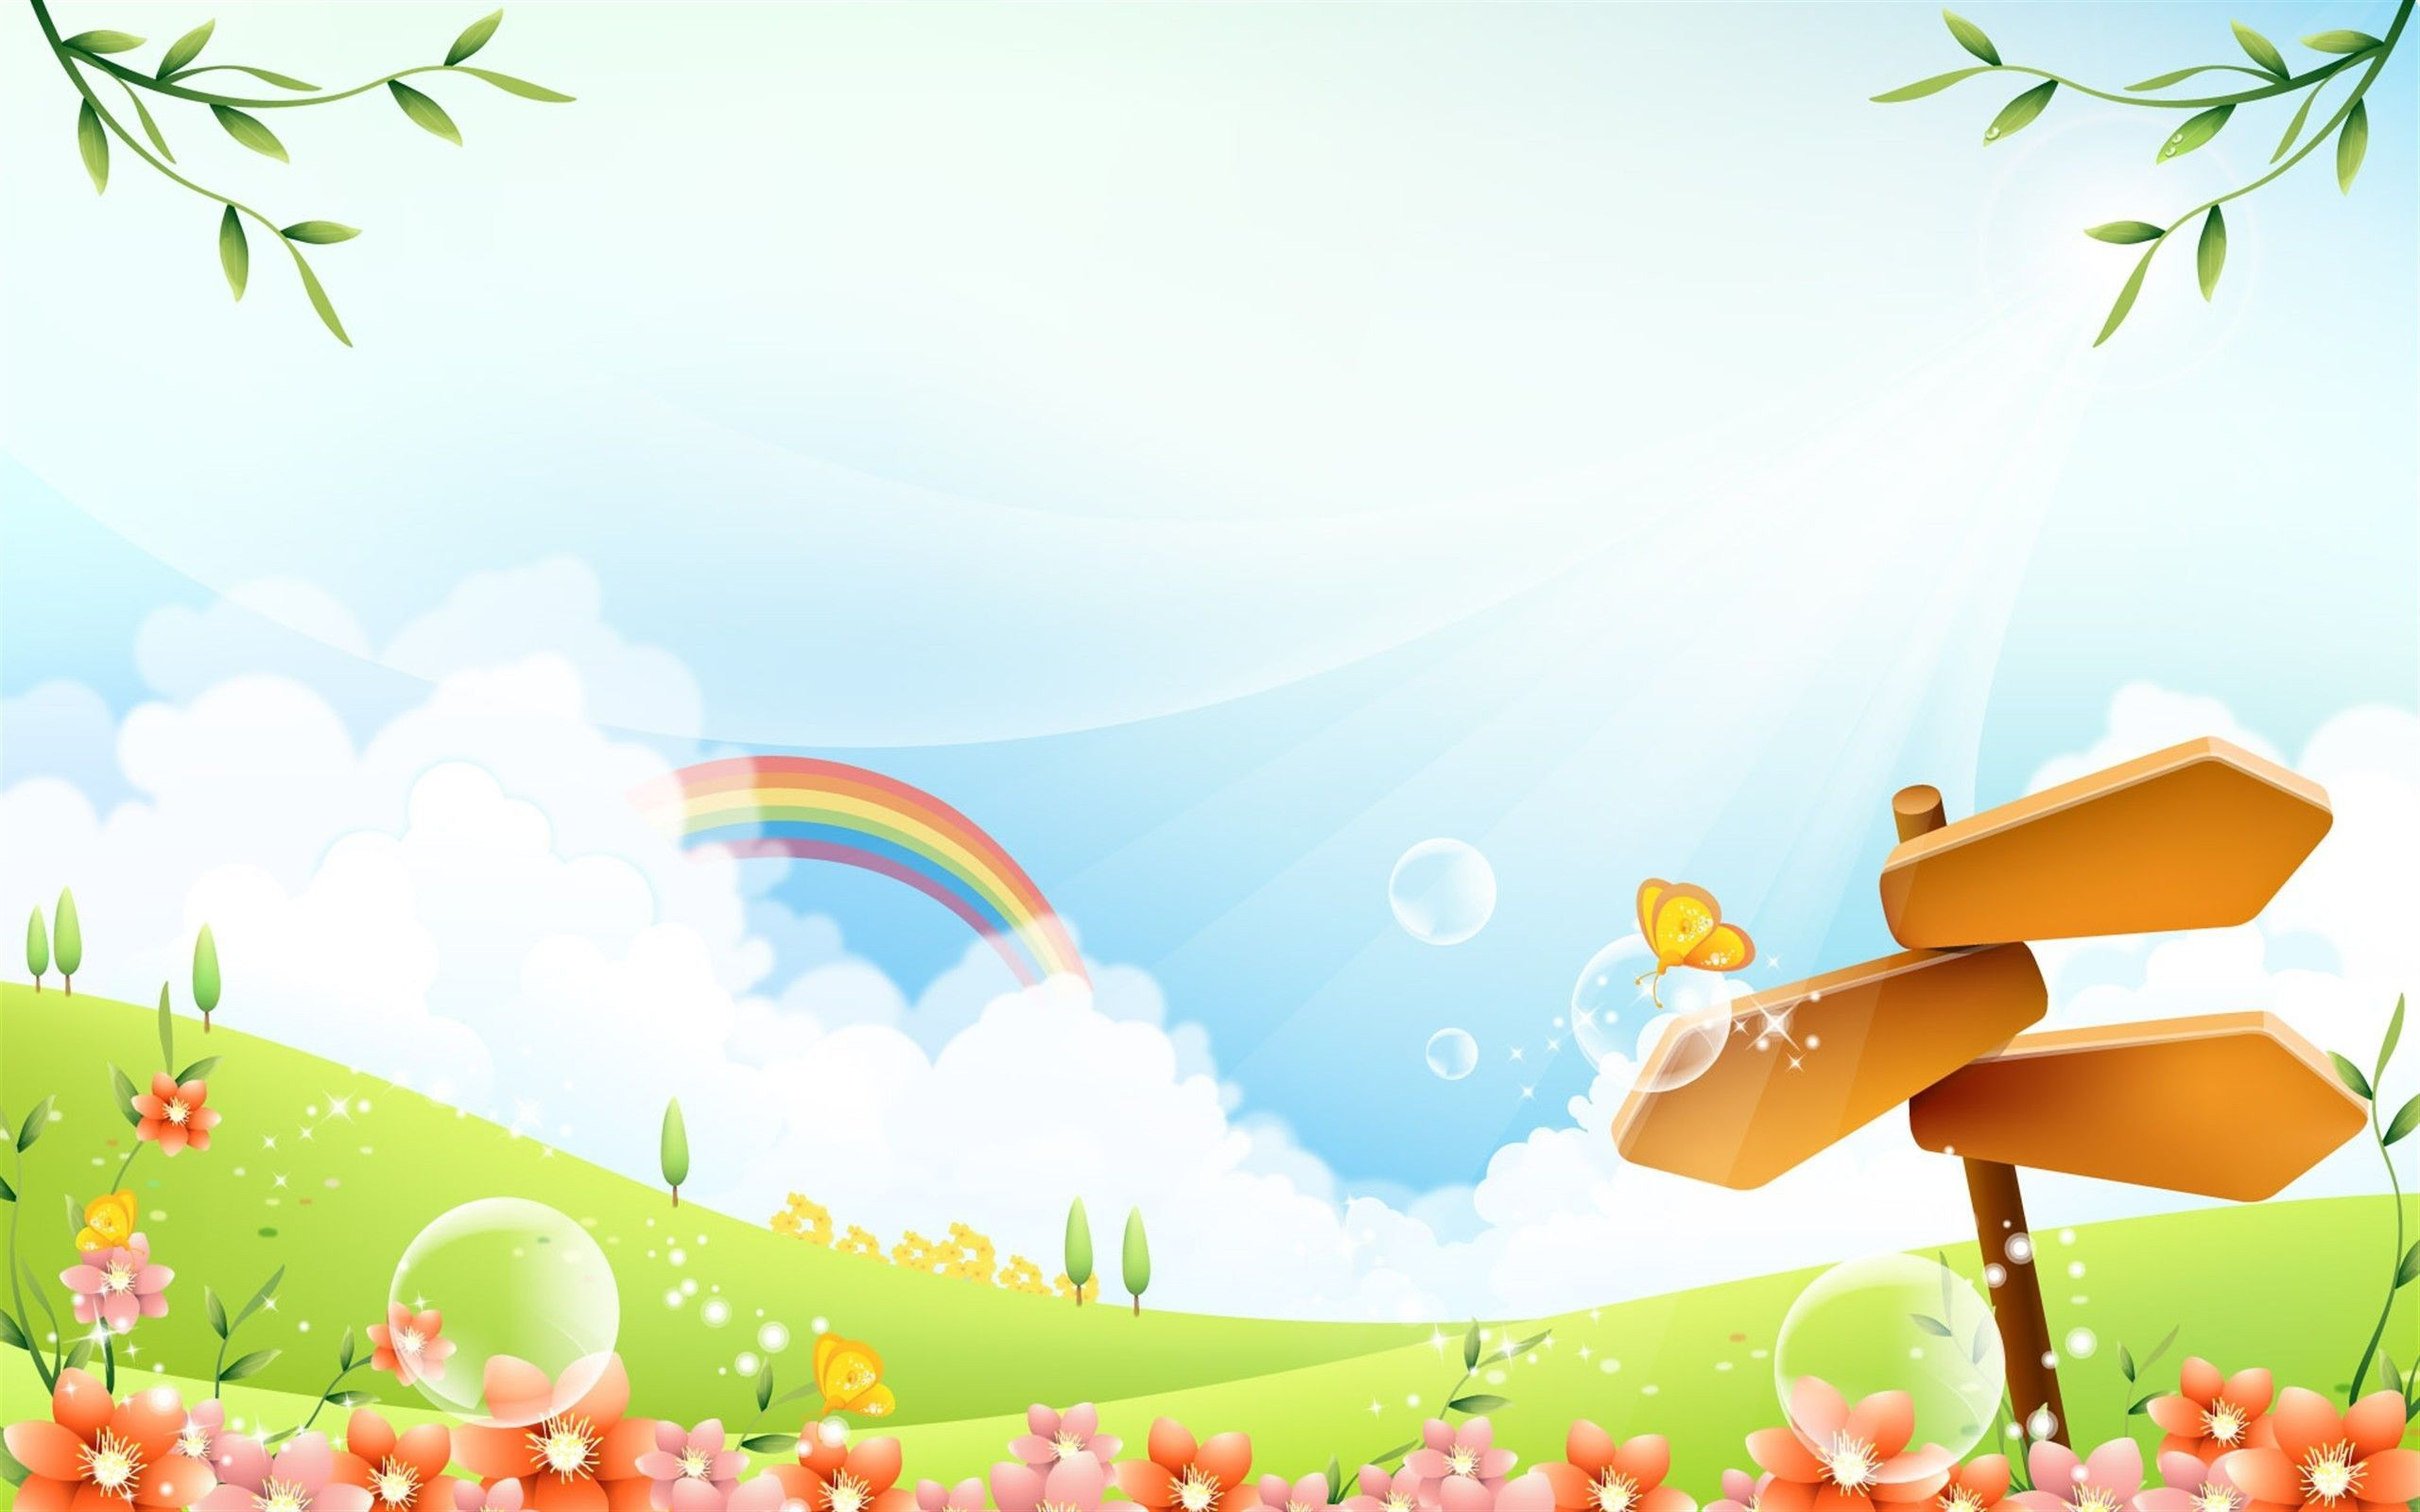 Rainbow Background Kids Background Landscape Background Cartoon Background Background Images Kids